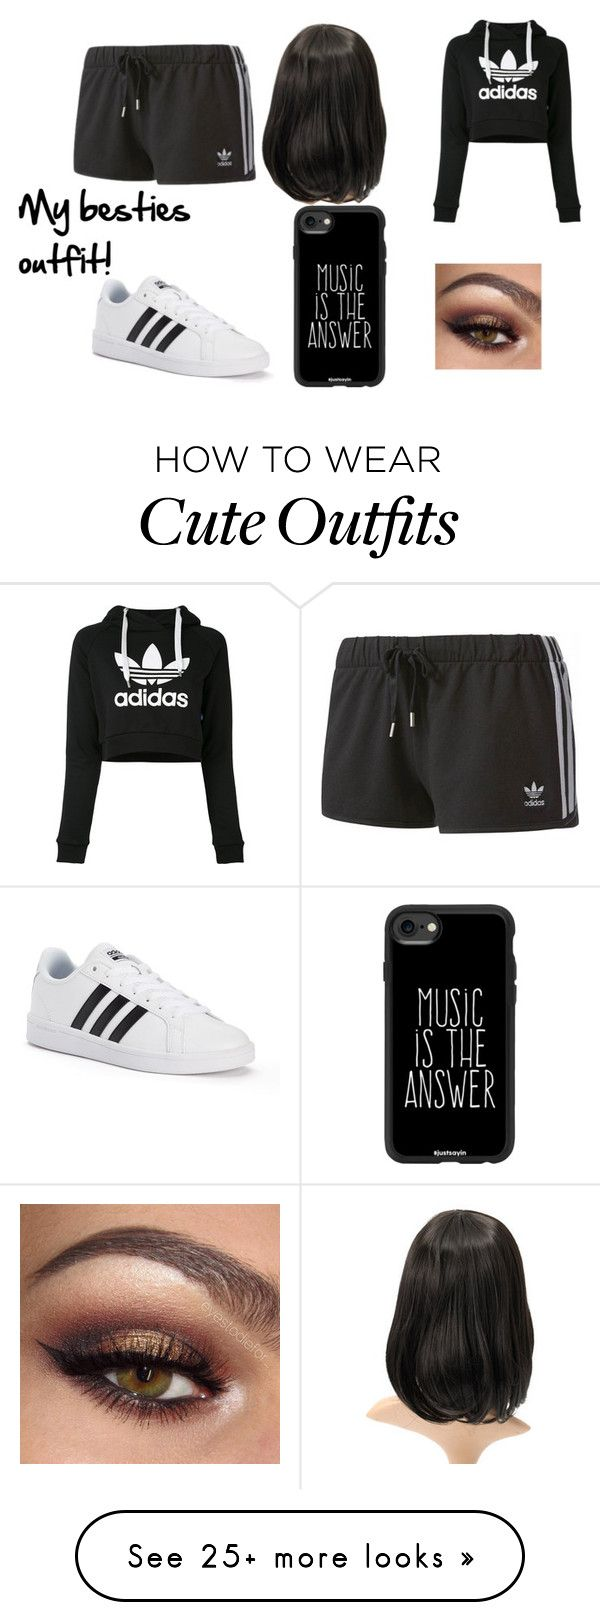 """My besties outfit!"" by i-love-cake3 on Polyvore featuring adidas and Casetify"